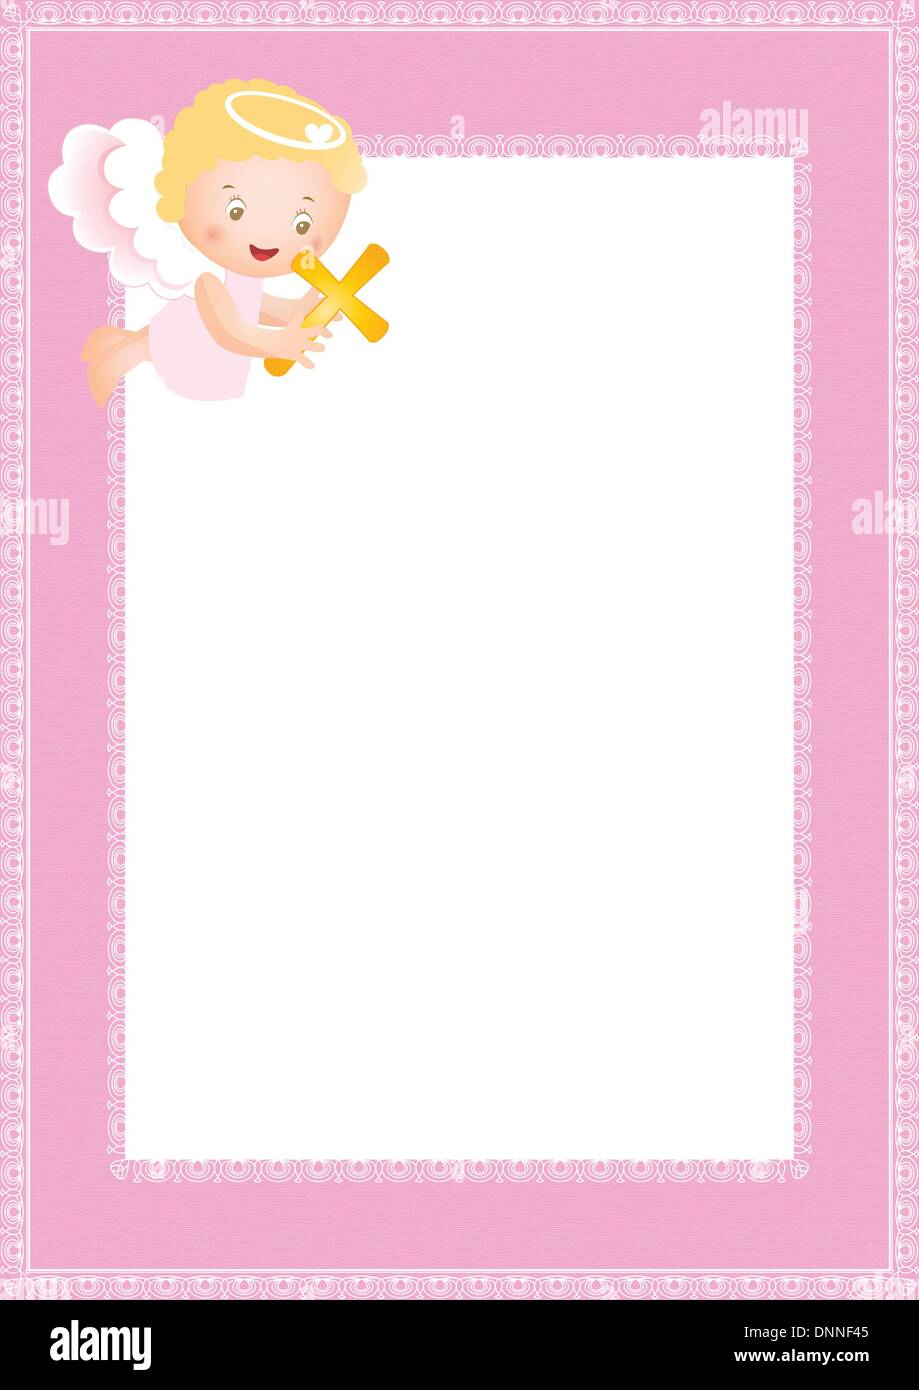 Baby baptism frame with small angel Stock Vector Art & Illustration ...